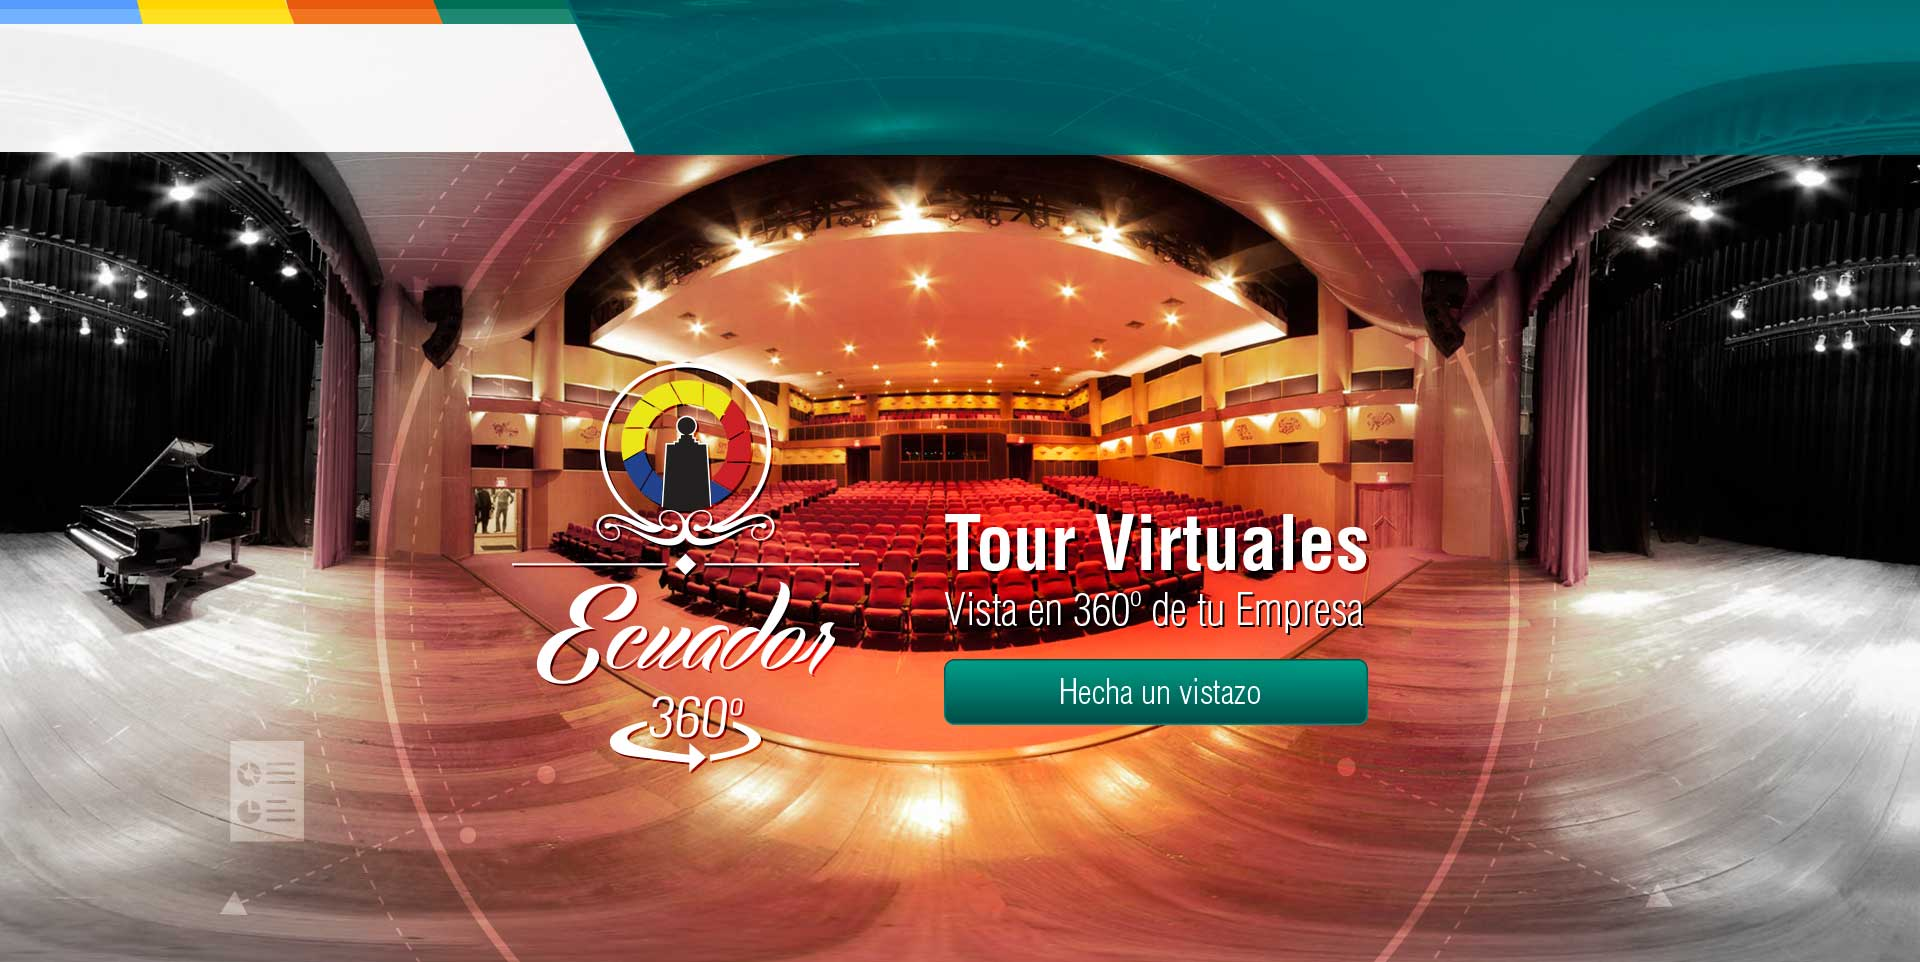 Tour-Virtuales